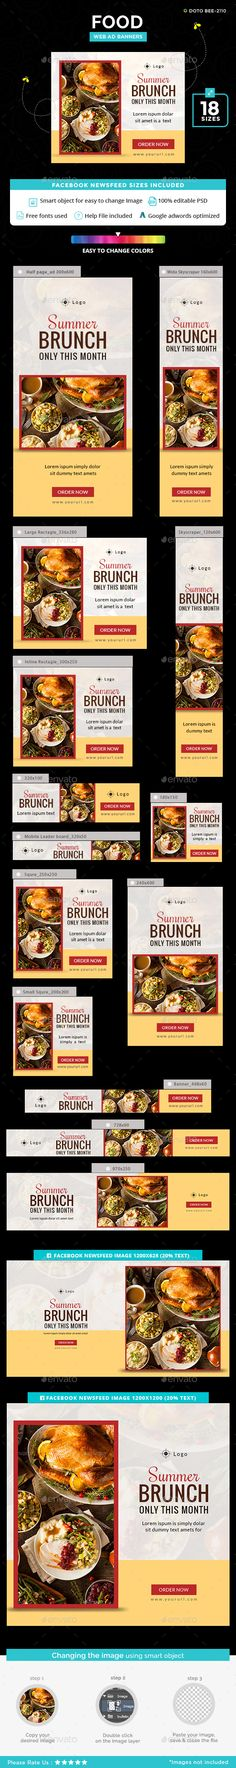 #Food #Banner #Template - #Banners & #Ads #Web #Elements #design. download here: https://graphicriver.net/item/food-banners/20192728?ref=yinkira